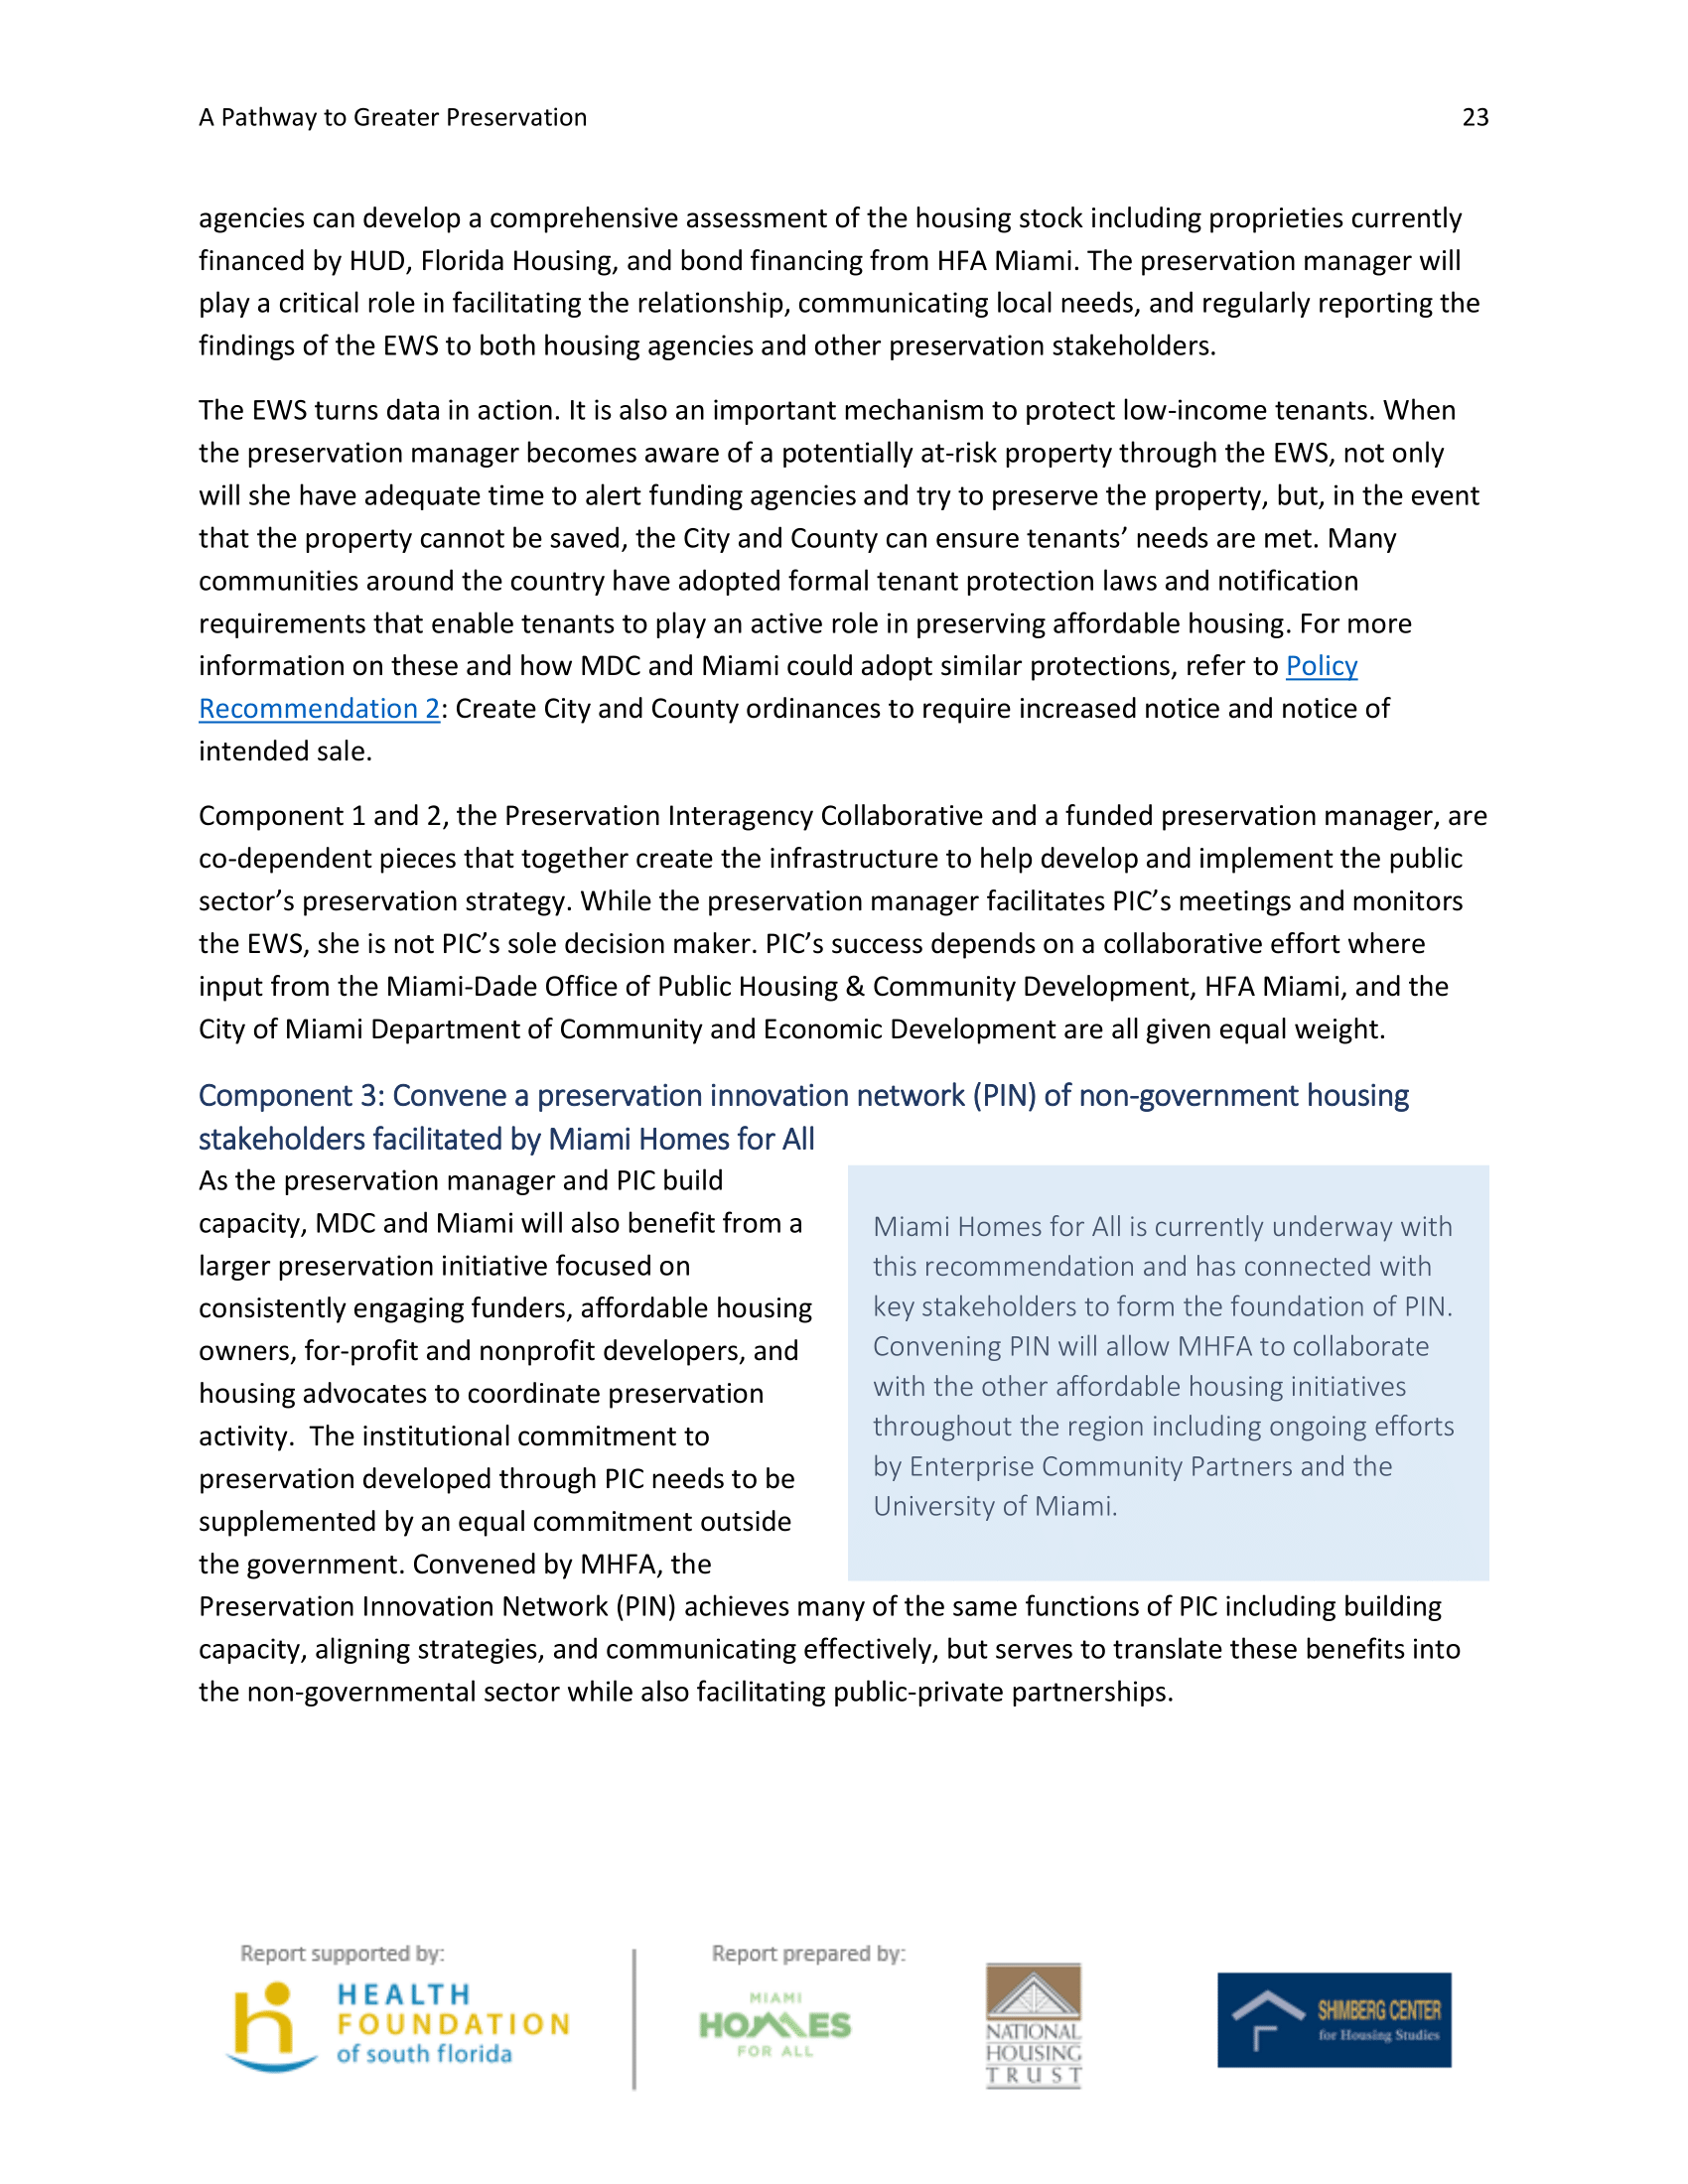 A Pathway to Greater Preservation - February 2018-31.png